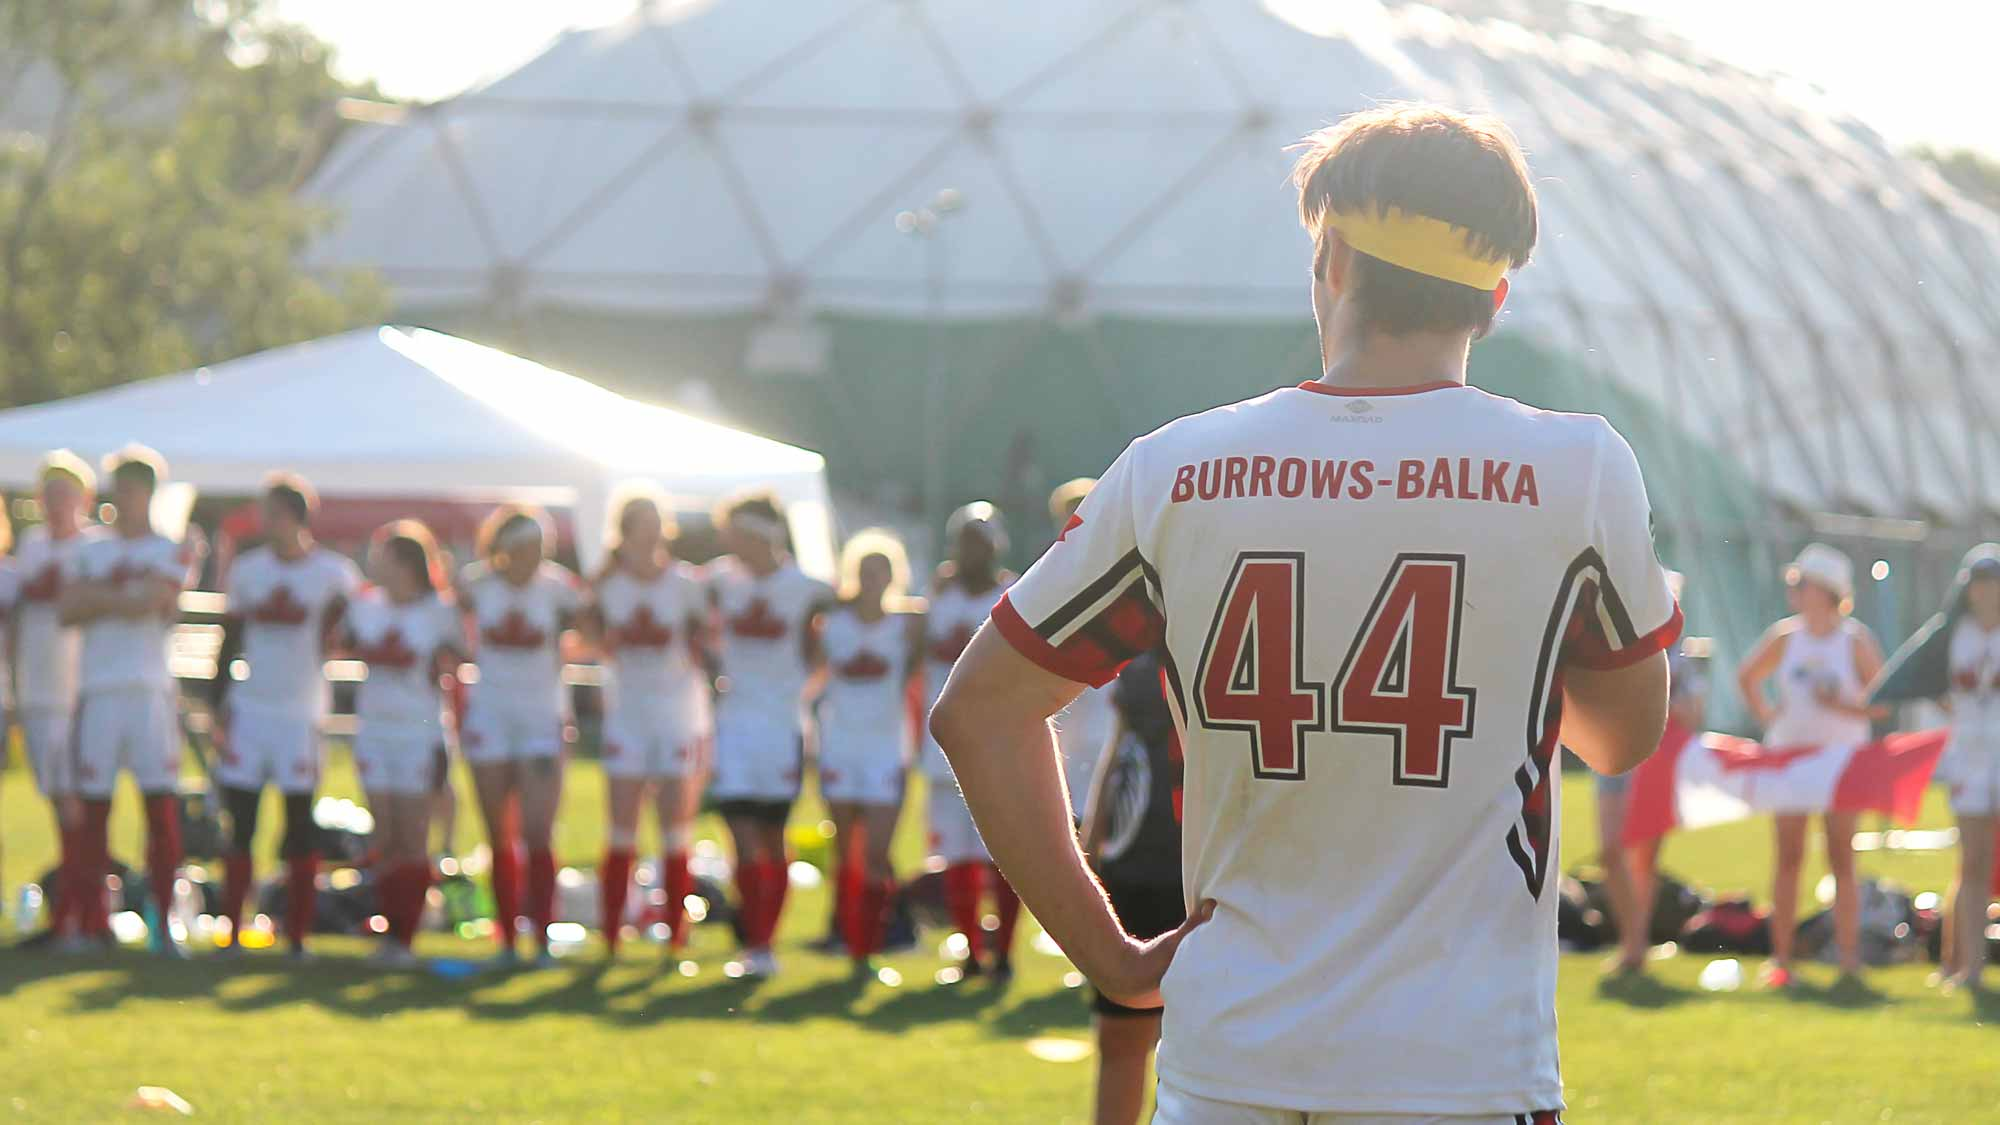 Photo of Quidditch Canada player in light jersey from the back.